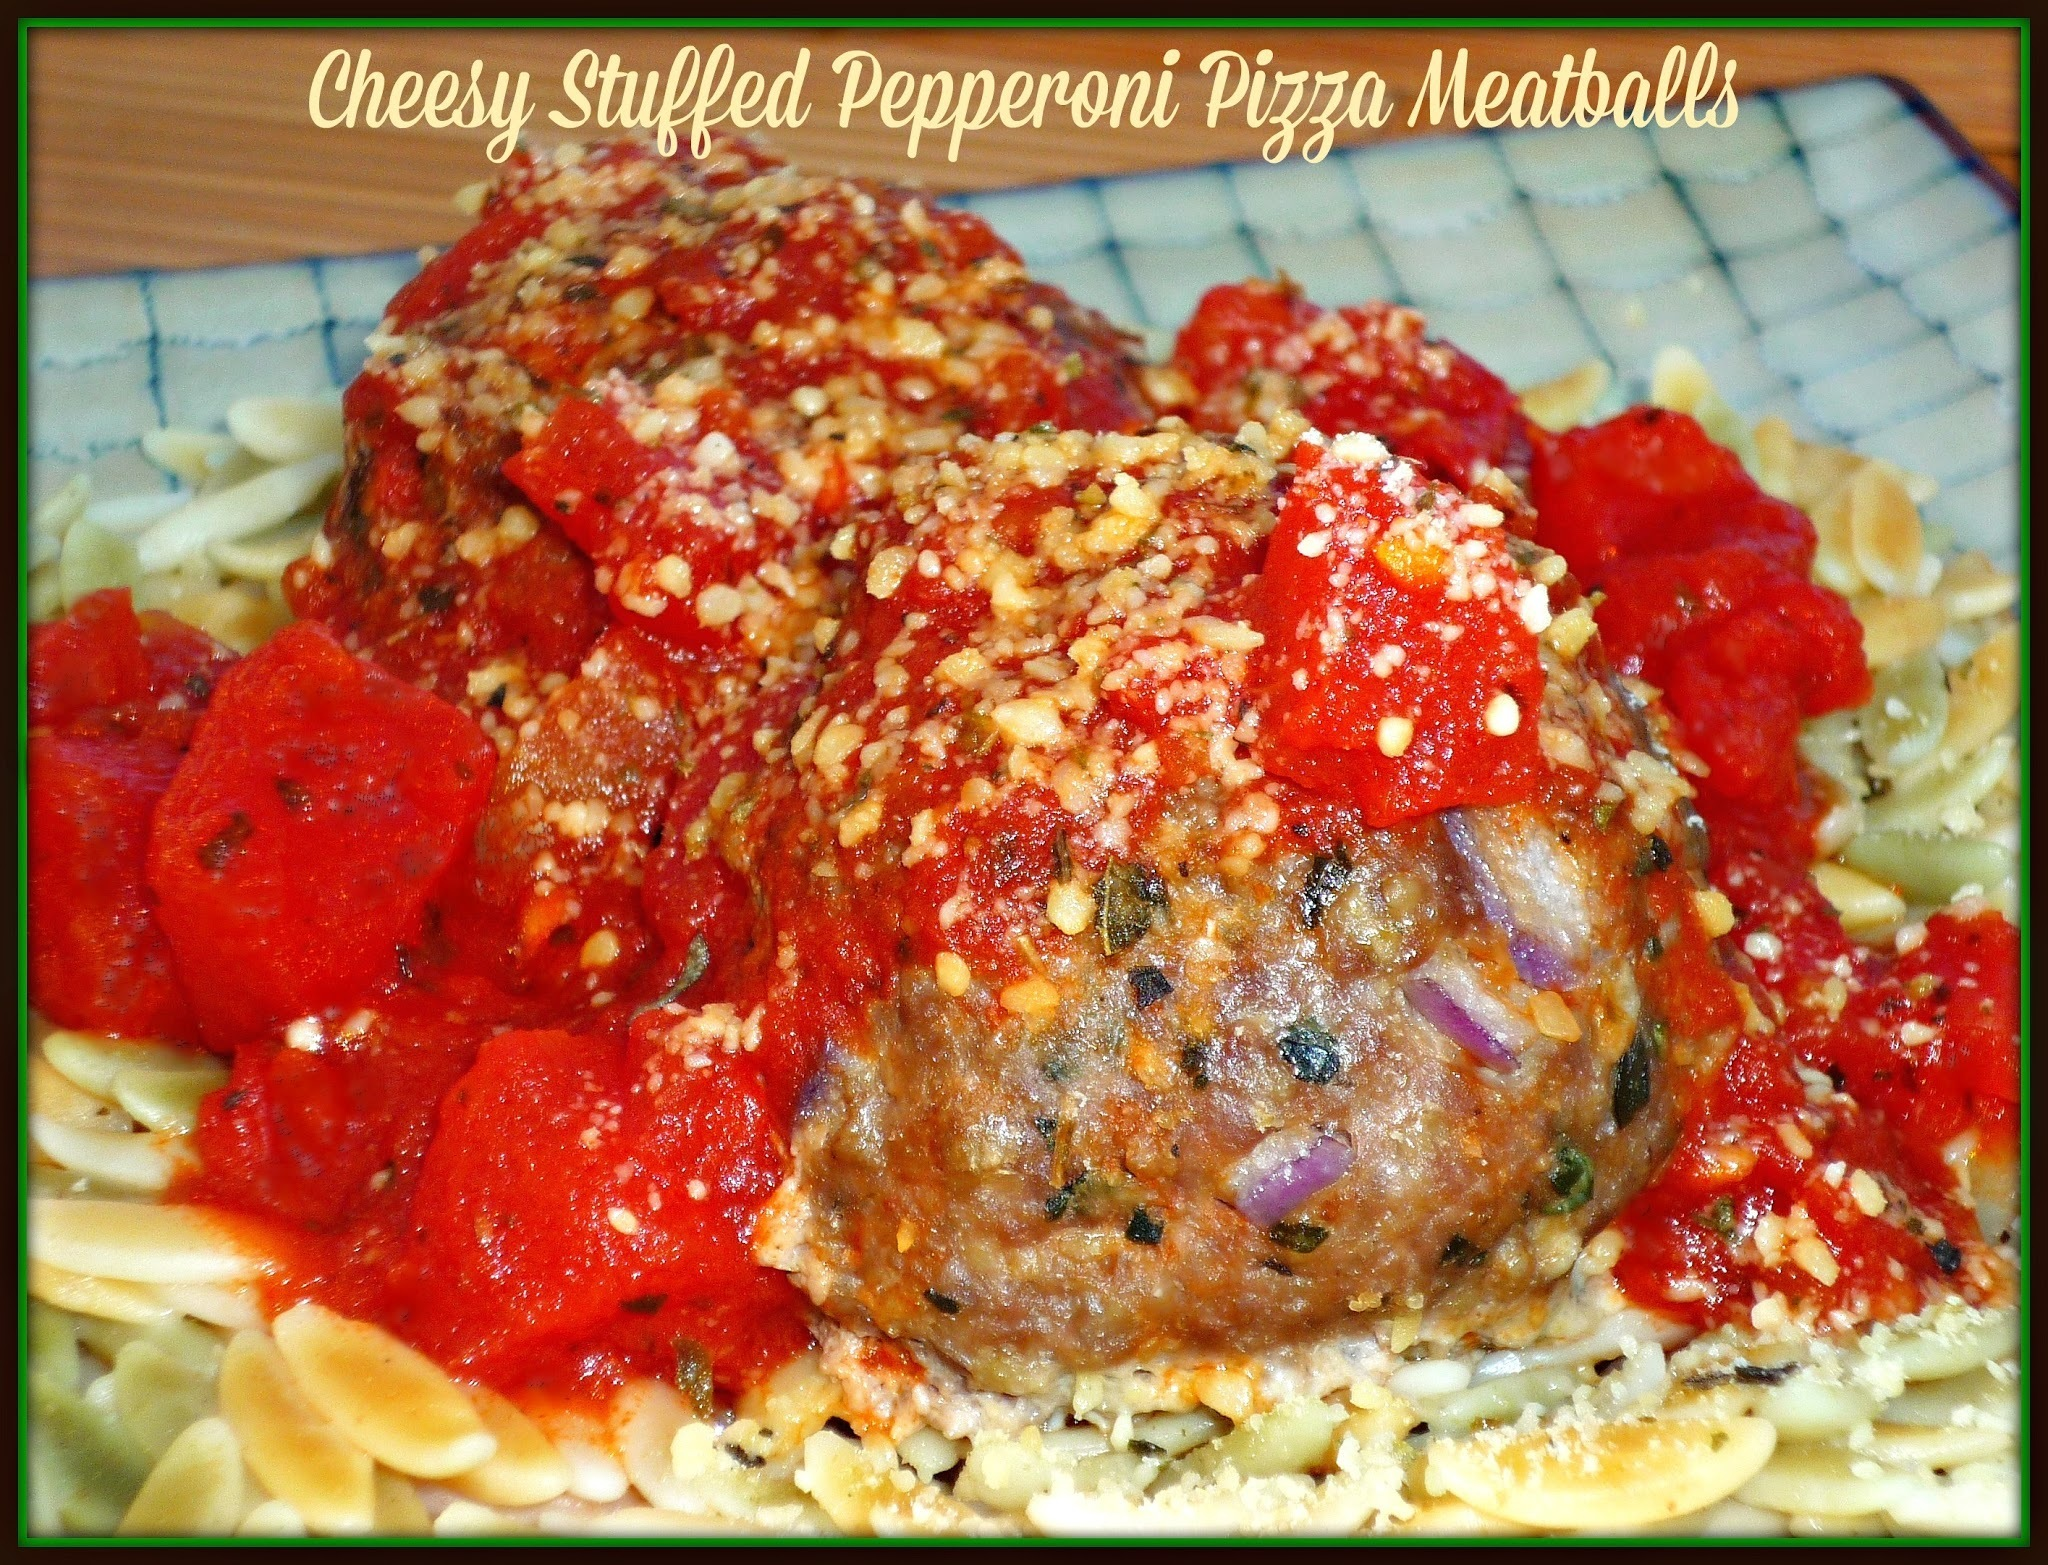 Meatball #SundaySupper...Featuring Cheesy Stuffed Pepperoni Pizza Meatballs